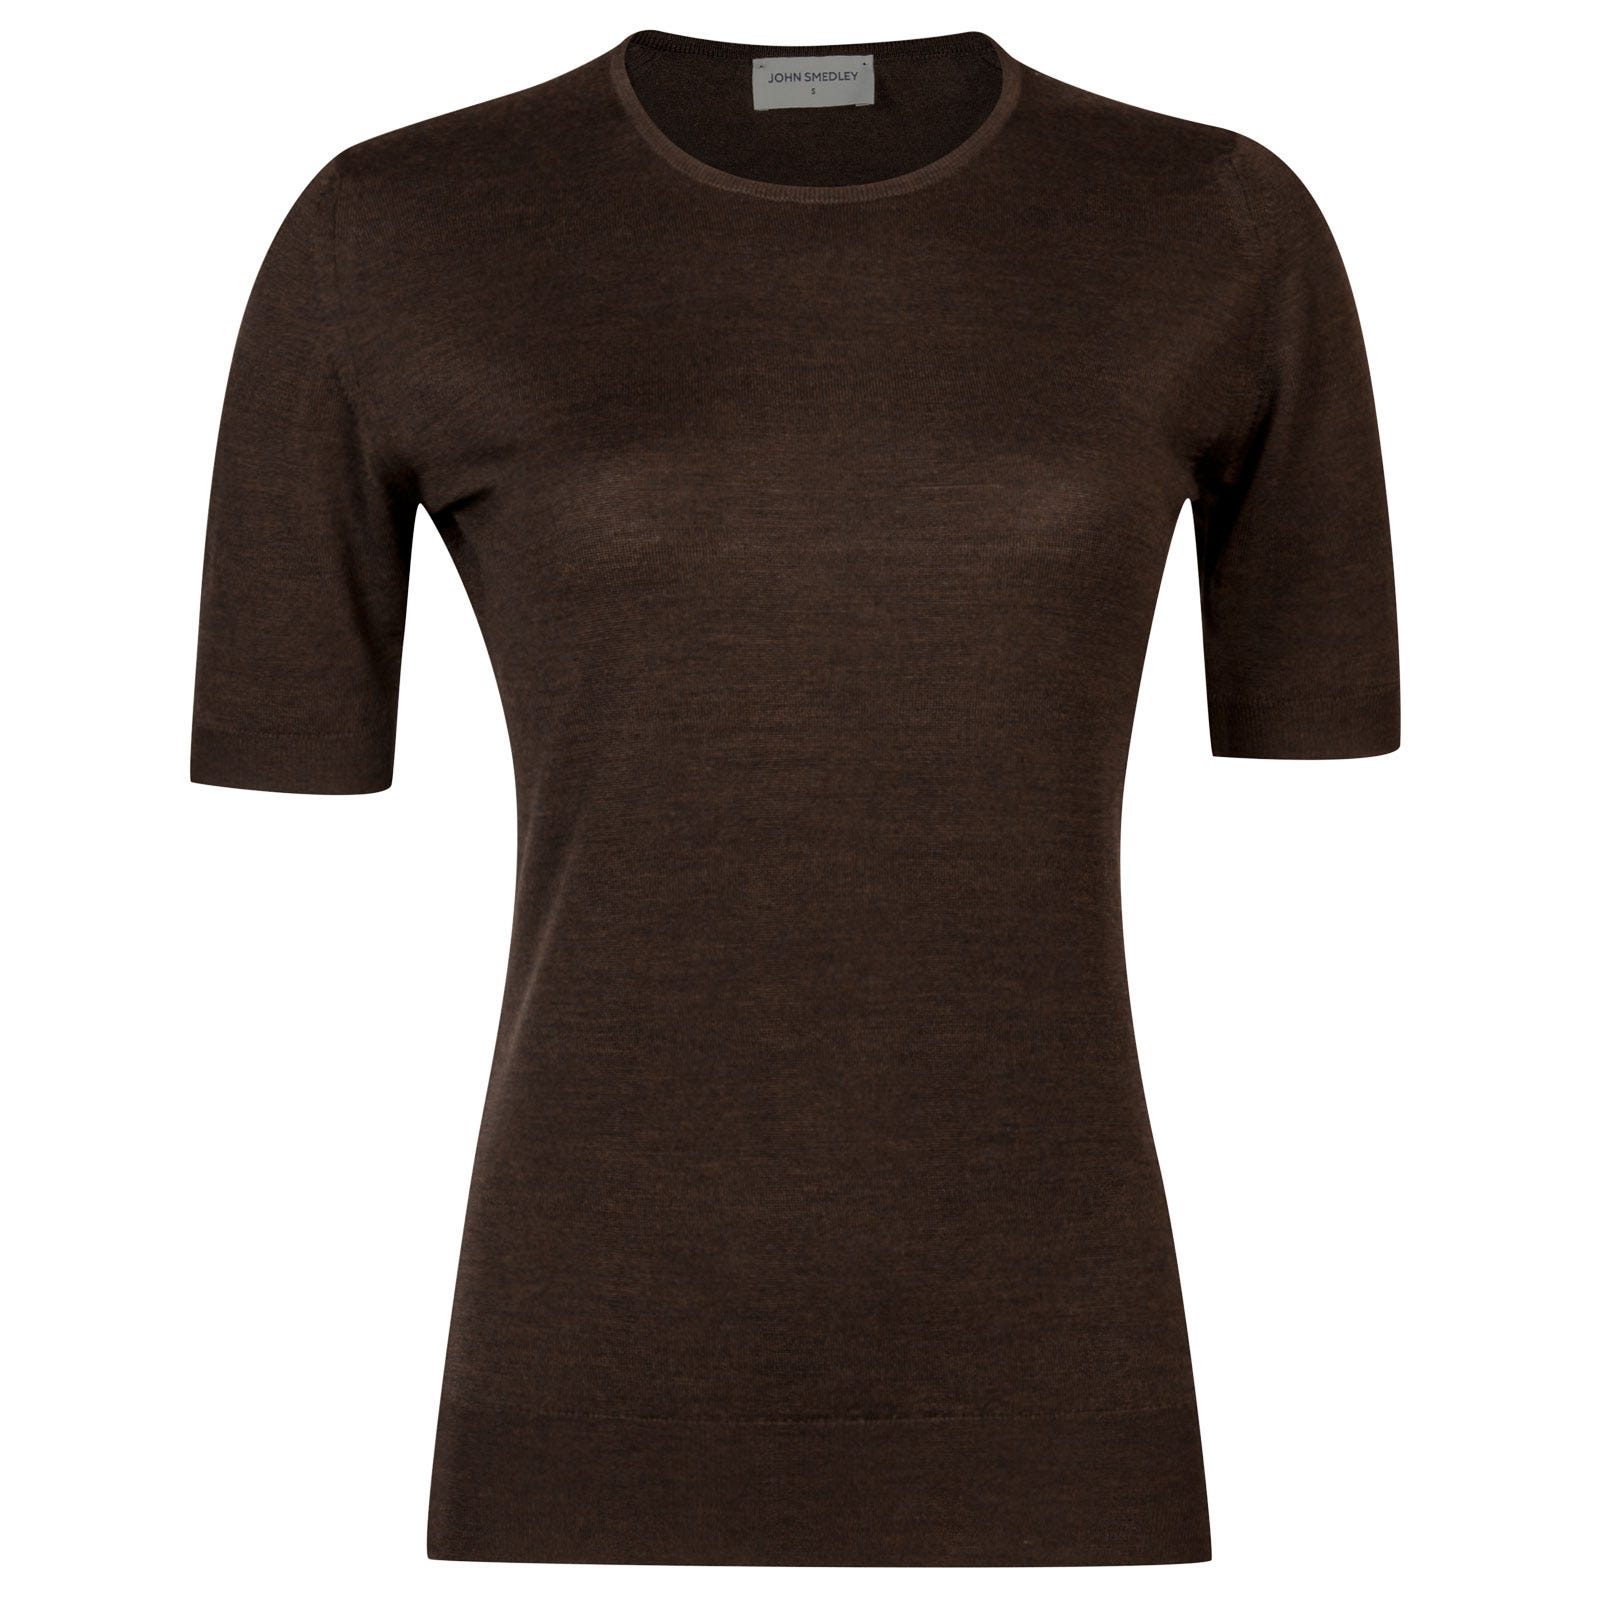 John Smedley rietta Merino Wool Sweater in Chestnut-XL